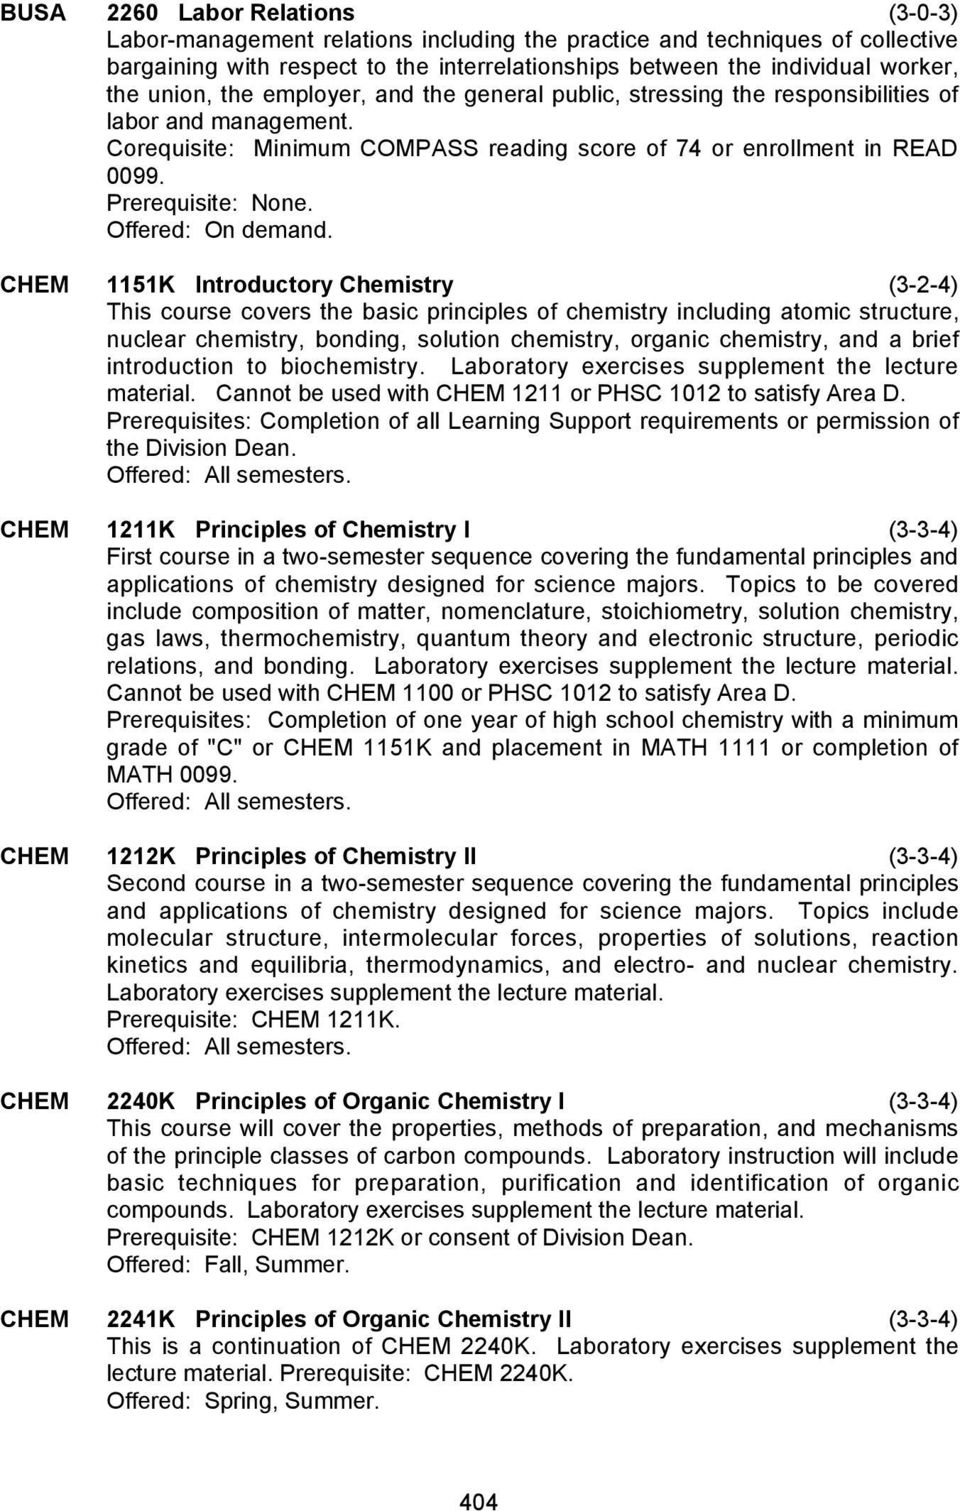 CHEM 1151K Introductory Chemistry (3-2-4) This course covers the basic principles of chemistry including atomic structure, nuclear chemistry, bonding, solution chemistry, organic chemistry, and a